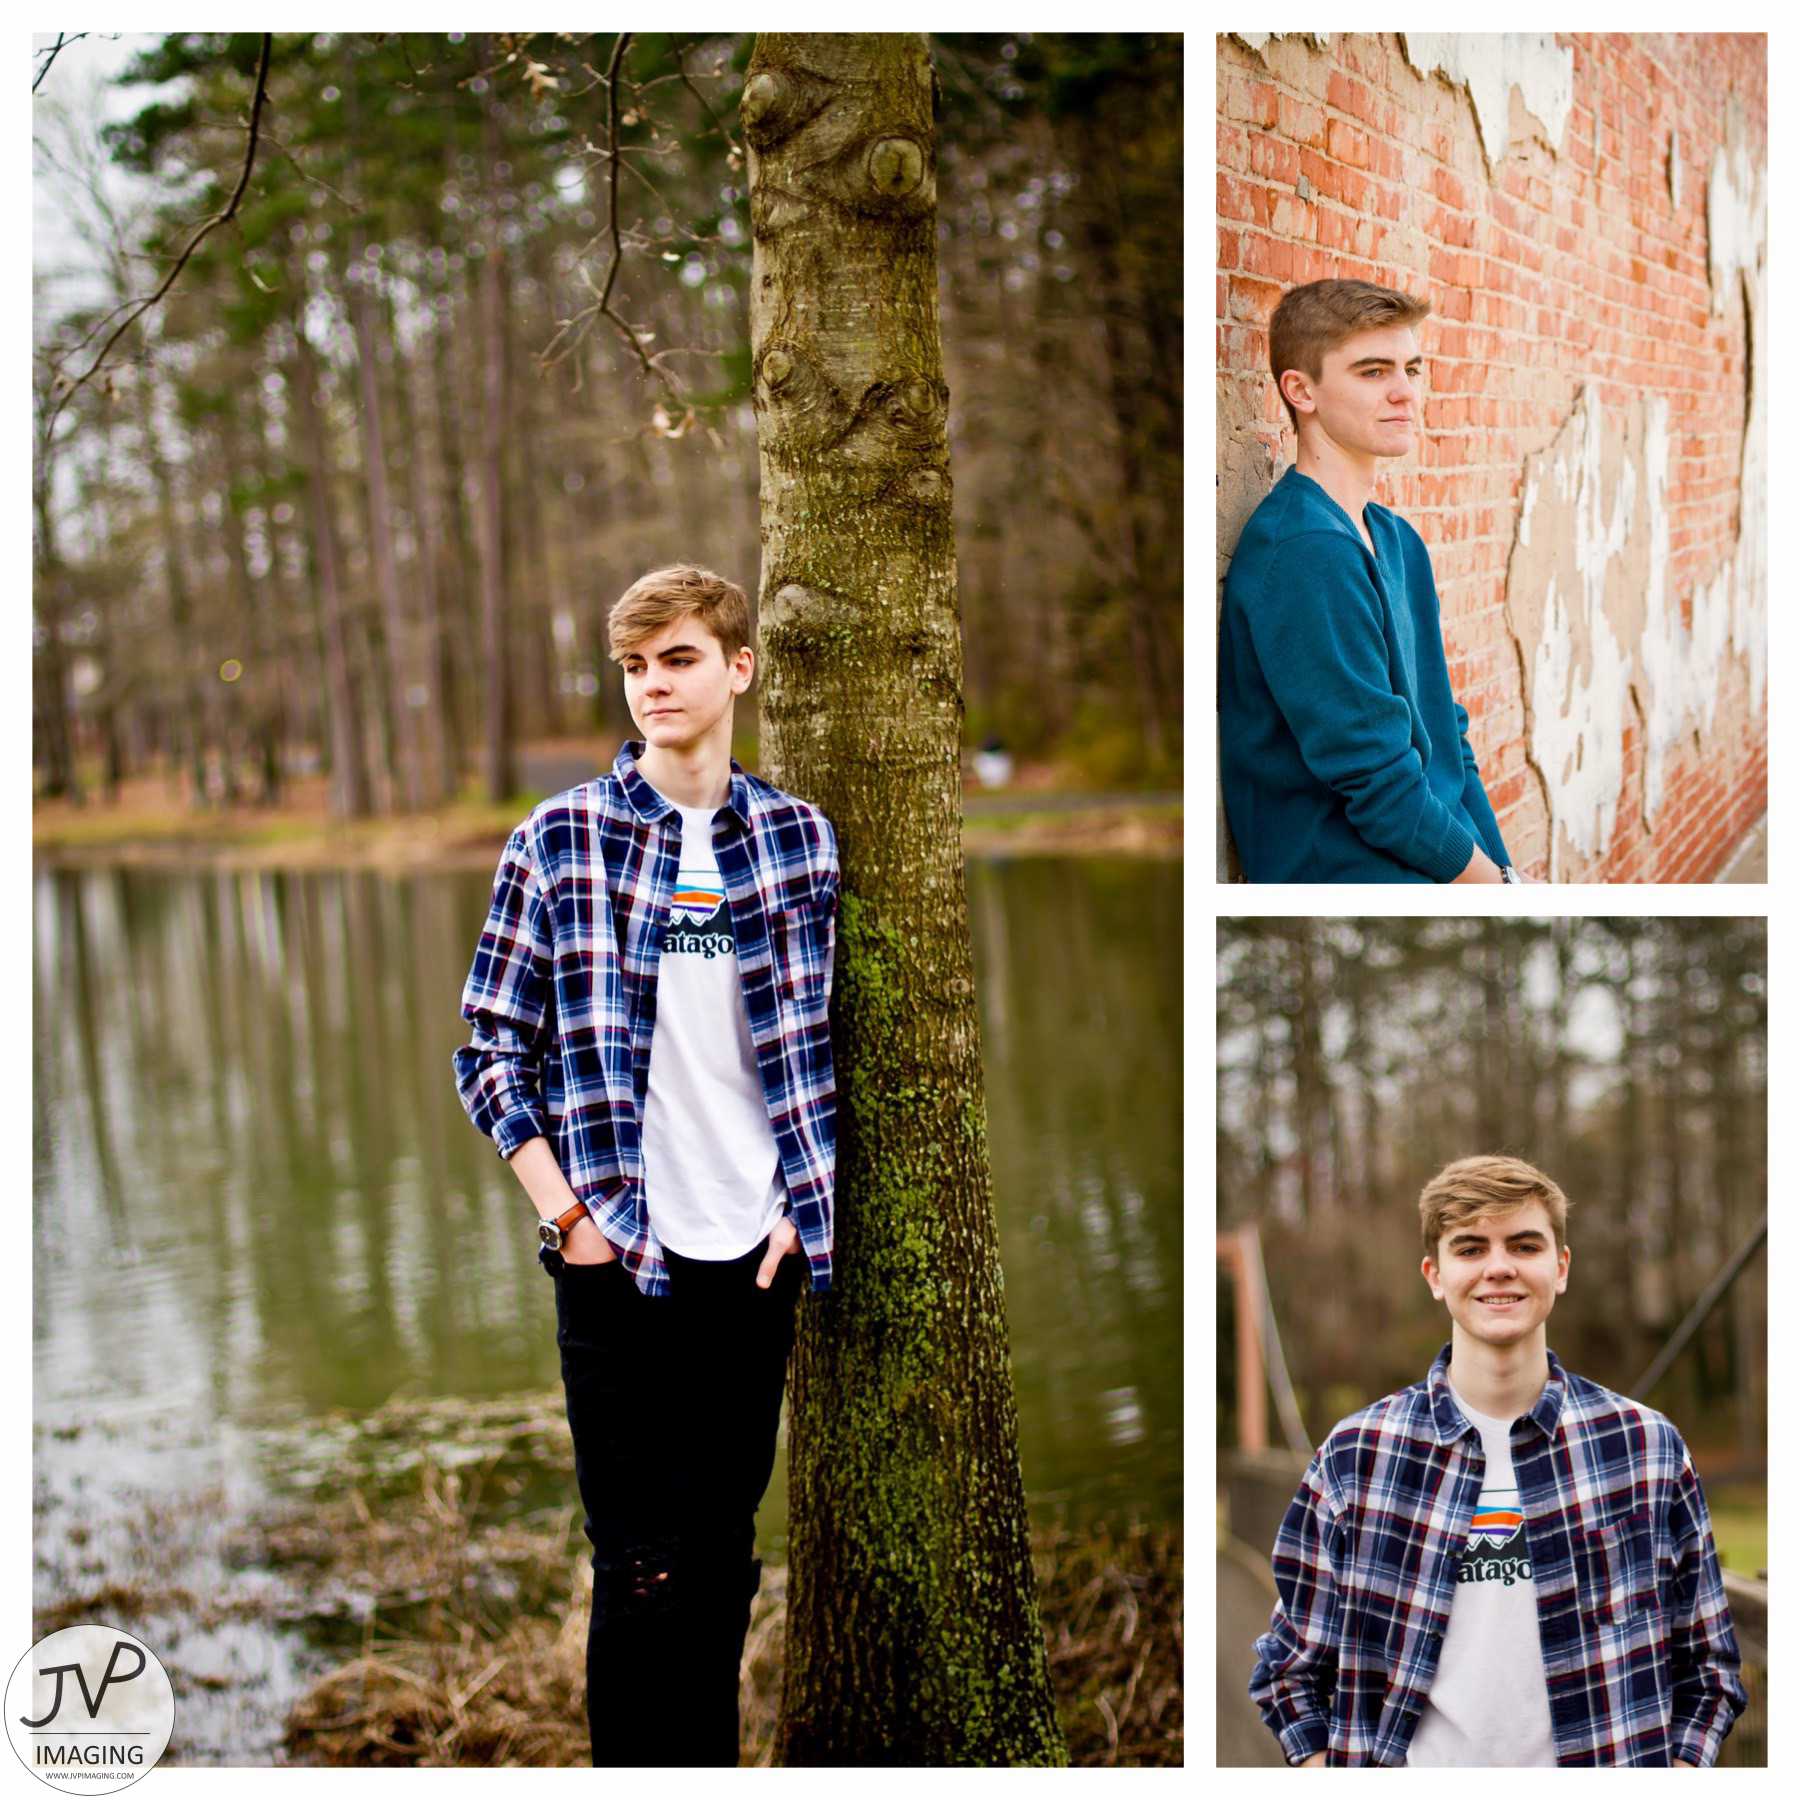 Max's Senior Photos